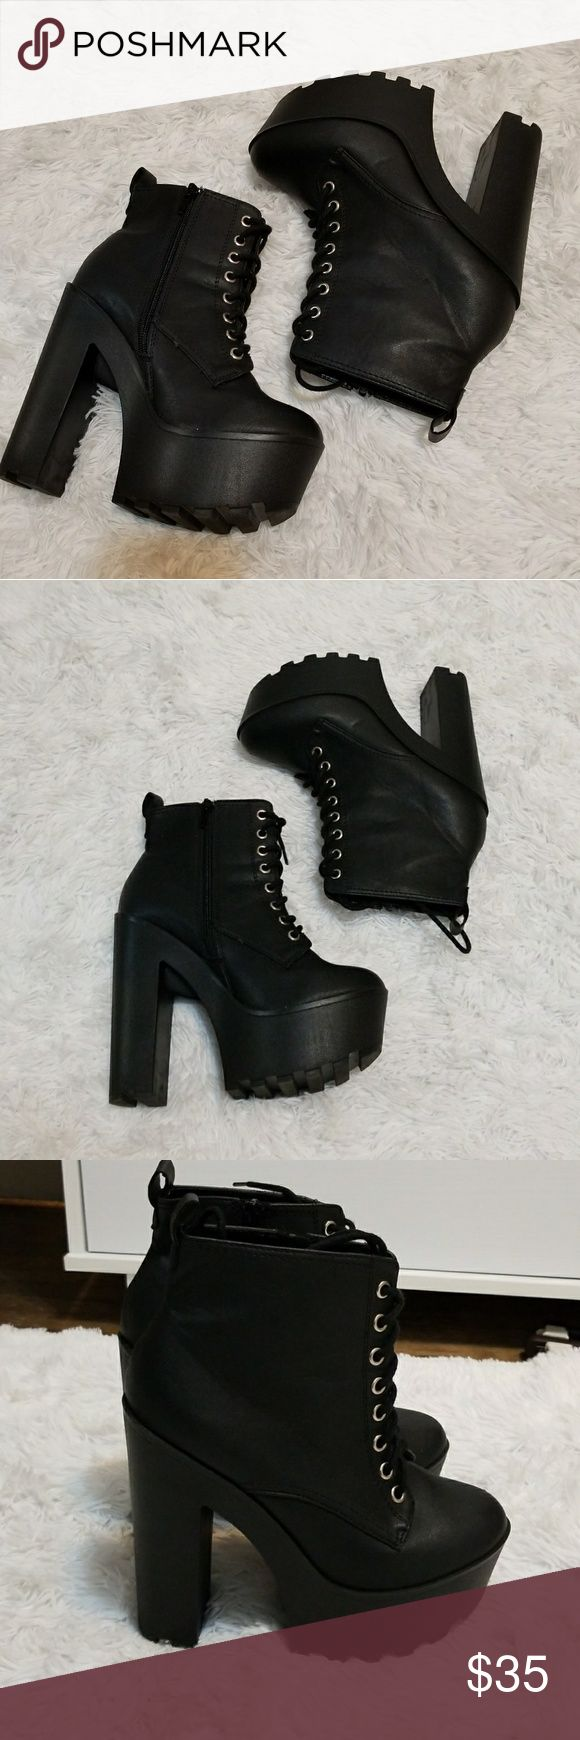 Major platform booties Like new. Cute goth, punk style lace up platform booties. Really cute with maxi skirts and cardigans. Or with leggings and plaid shirts! Very cool!!! Soda Shoes Lace Up Boots